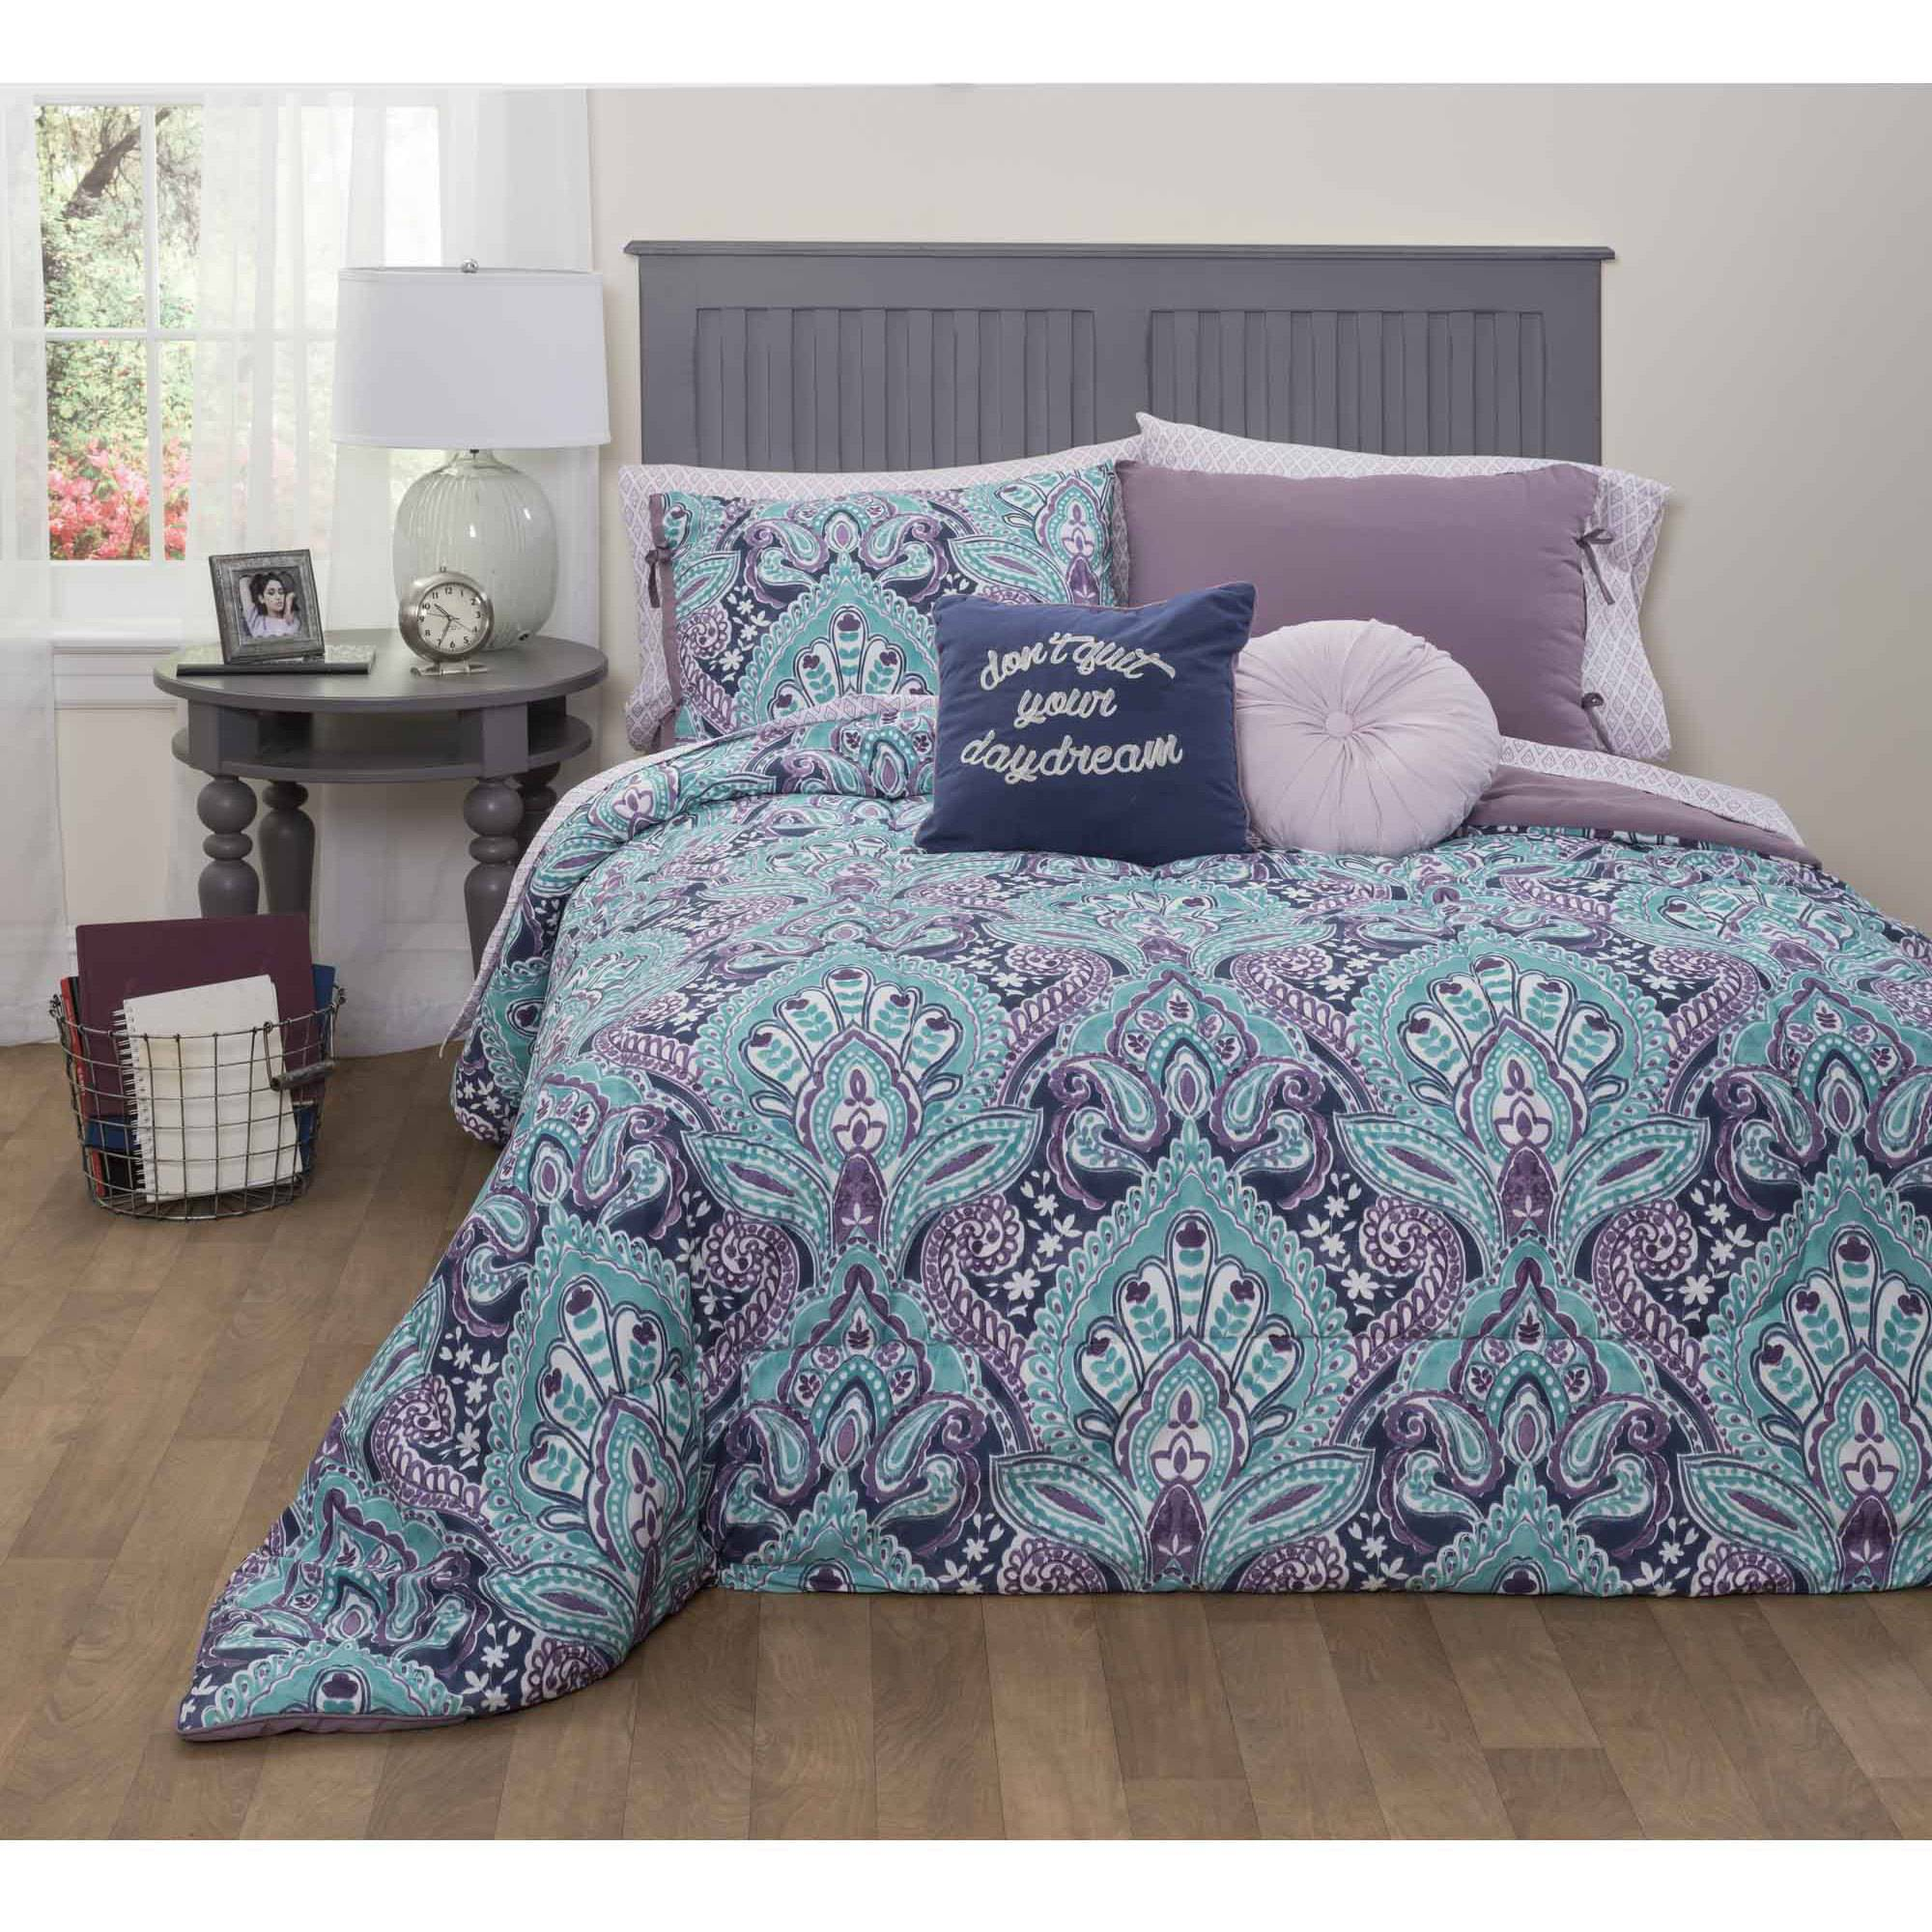 Formula Mia Damask Bed-in-a-Bag Bedding Set, Queen